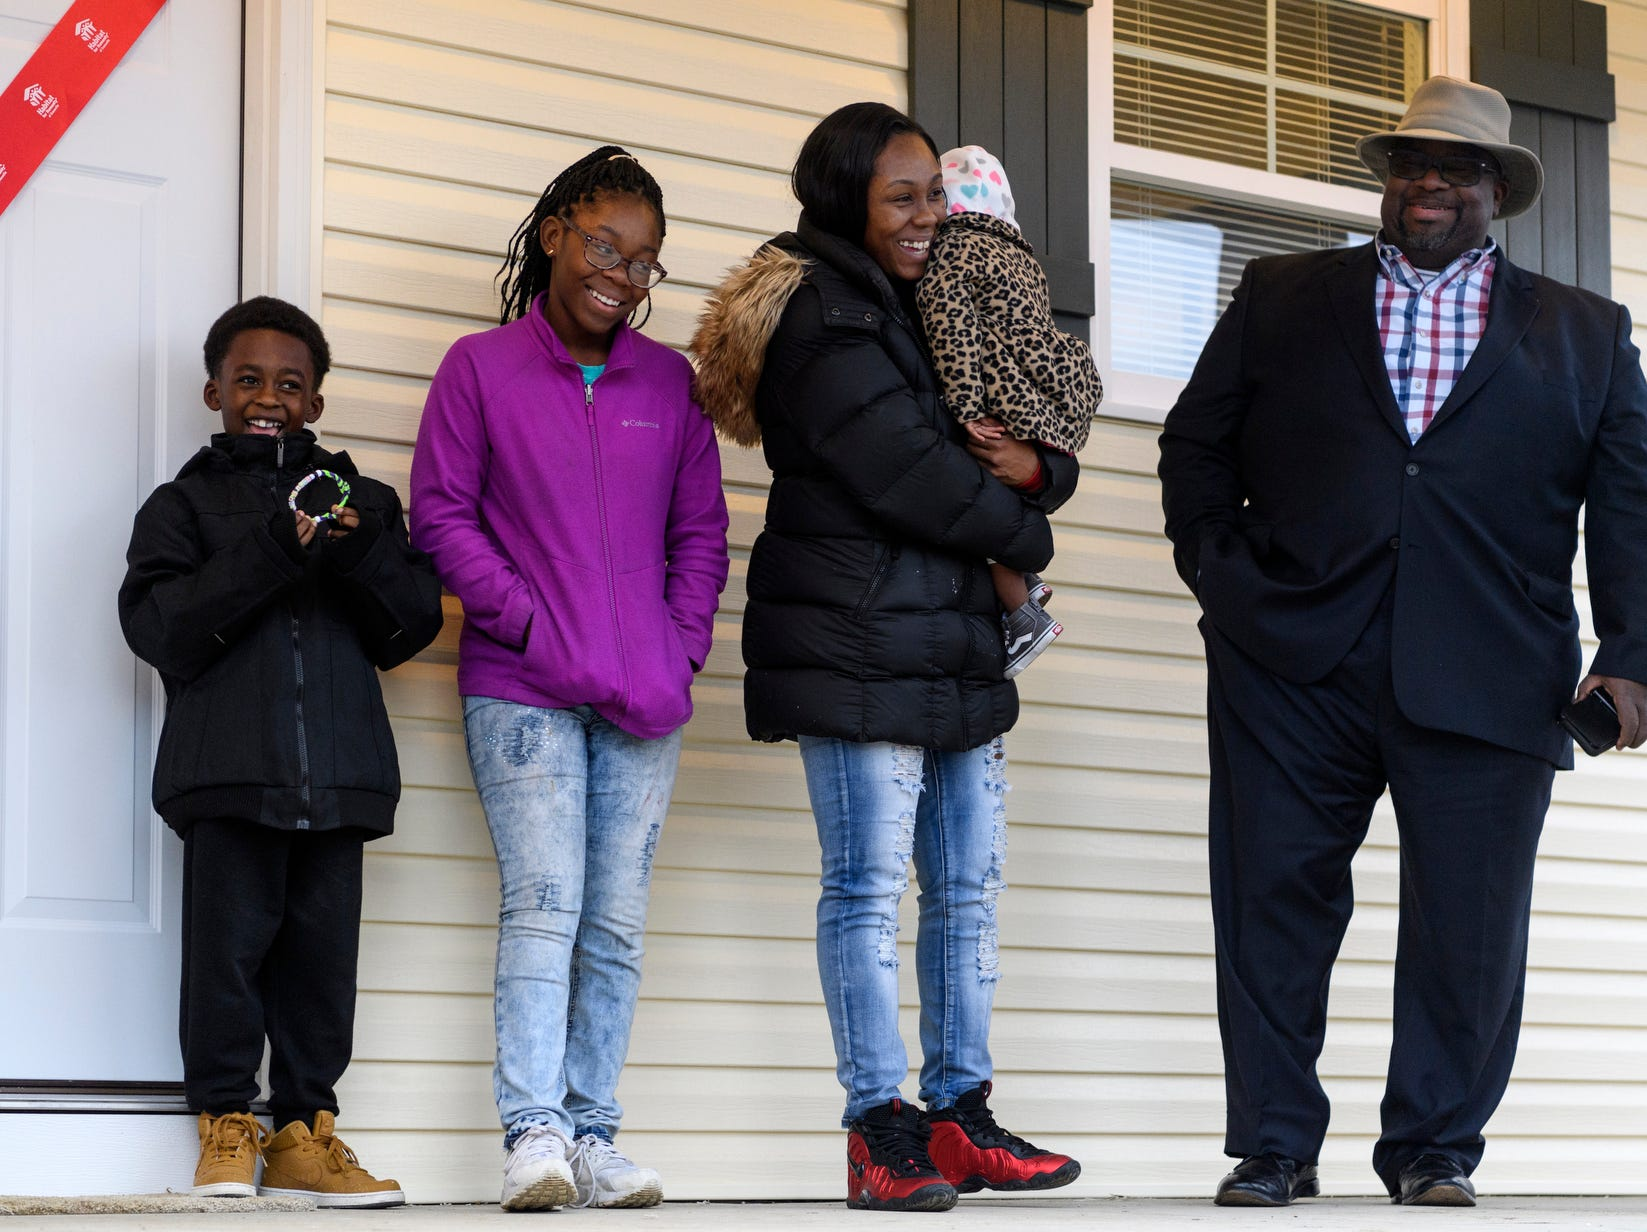 Tamisha Dilworth, second from right to left, and her three children, Teresa, Aliyah and Travon receive a home blessing from The Rev. Larry Roscoe, right, Pastor of Nazarene Missionary Baptist church, during the 500th Habitat for Humanity home dedication ceremony on Bedford Avenue in Evansville, Ind., Thursday, Dec. 20, 2018. Dilworth is Evansville's 500th Habitat for Humanity homeowner.